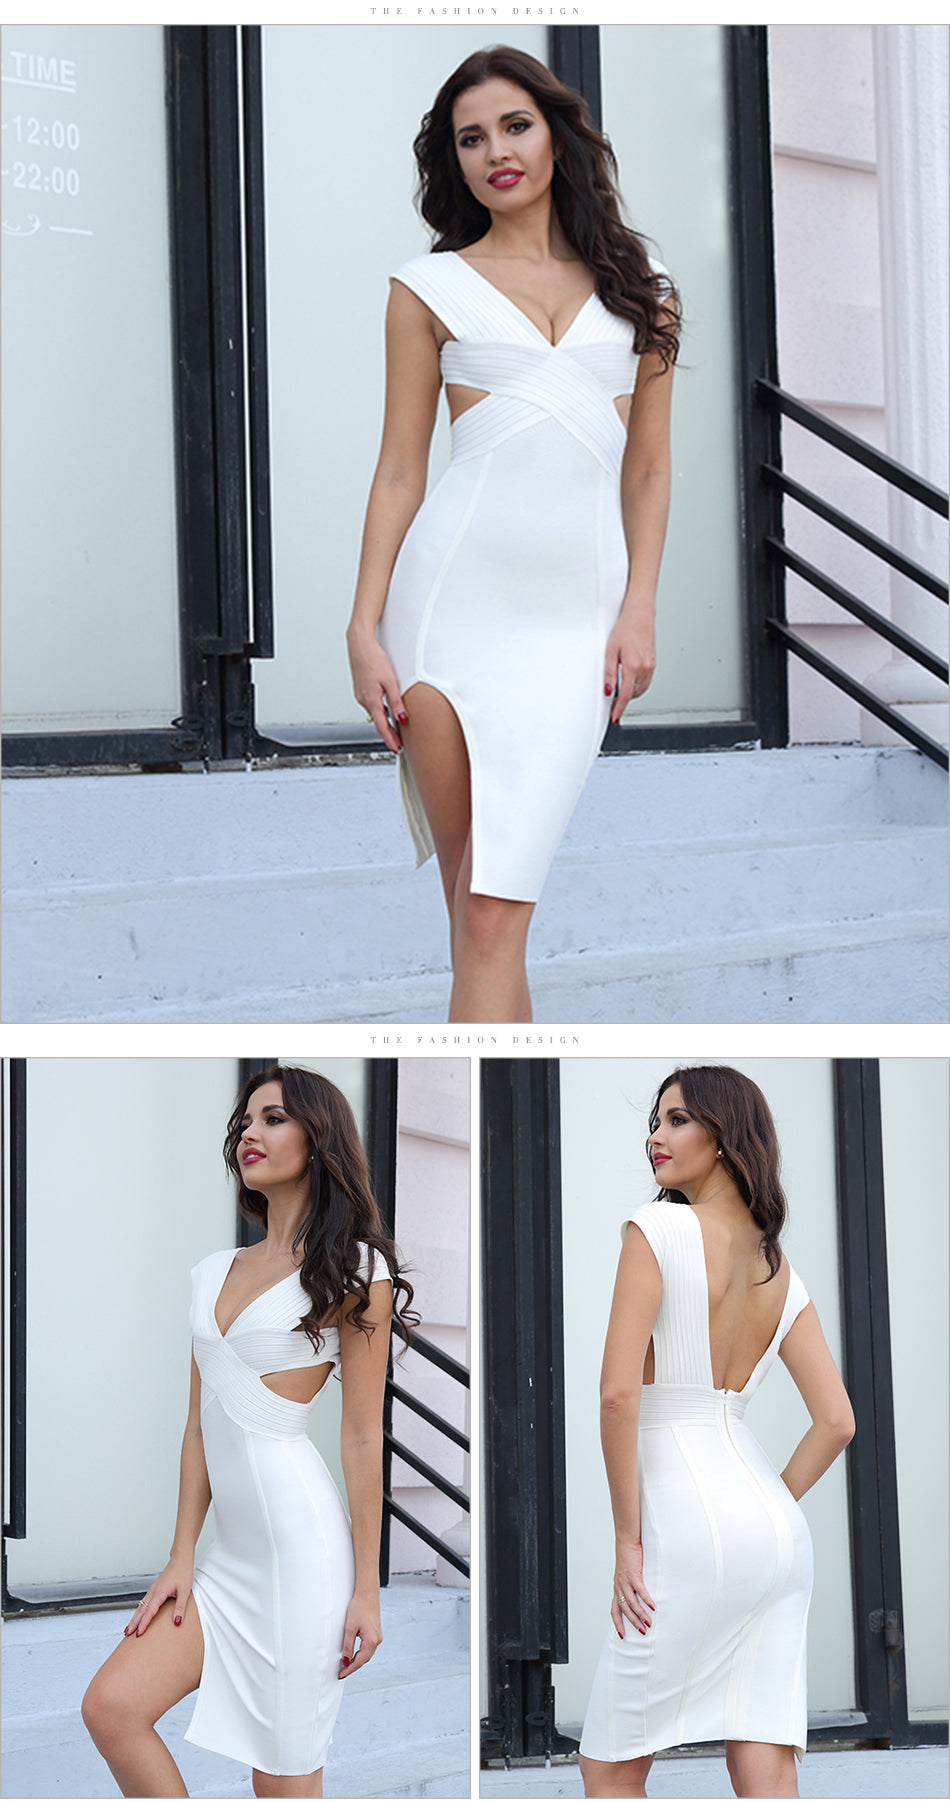 V-Neck Cut Out Bandage Dress